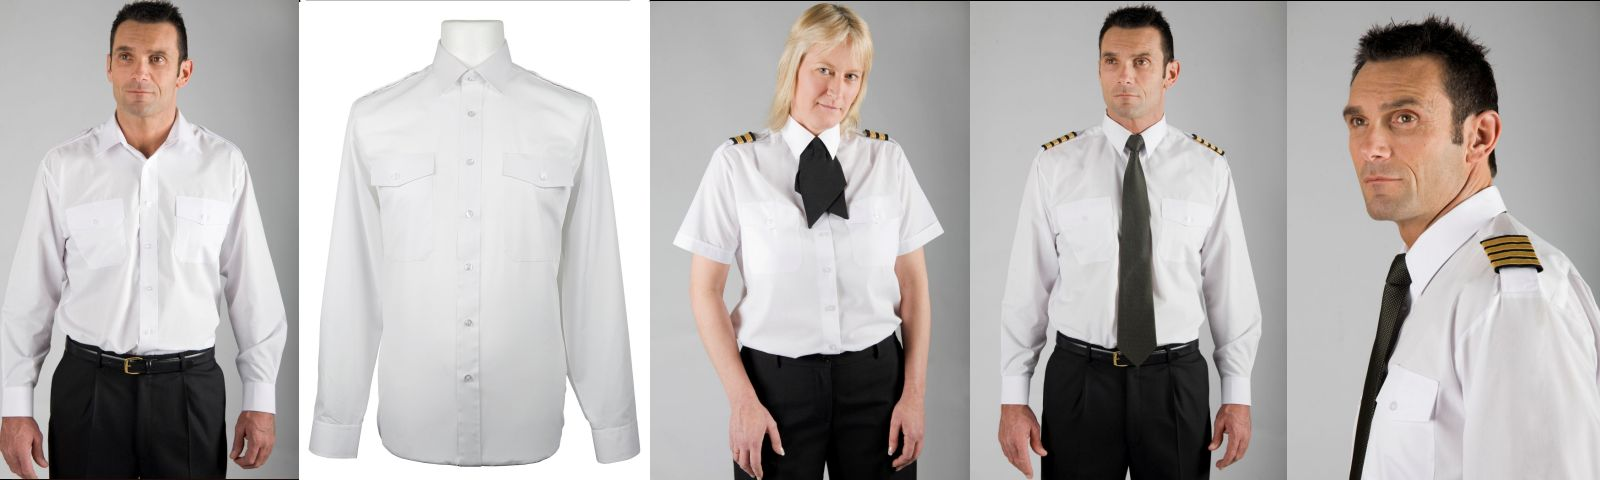 Pilot and Uniform shirts